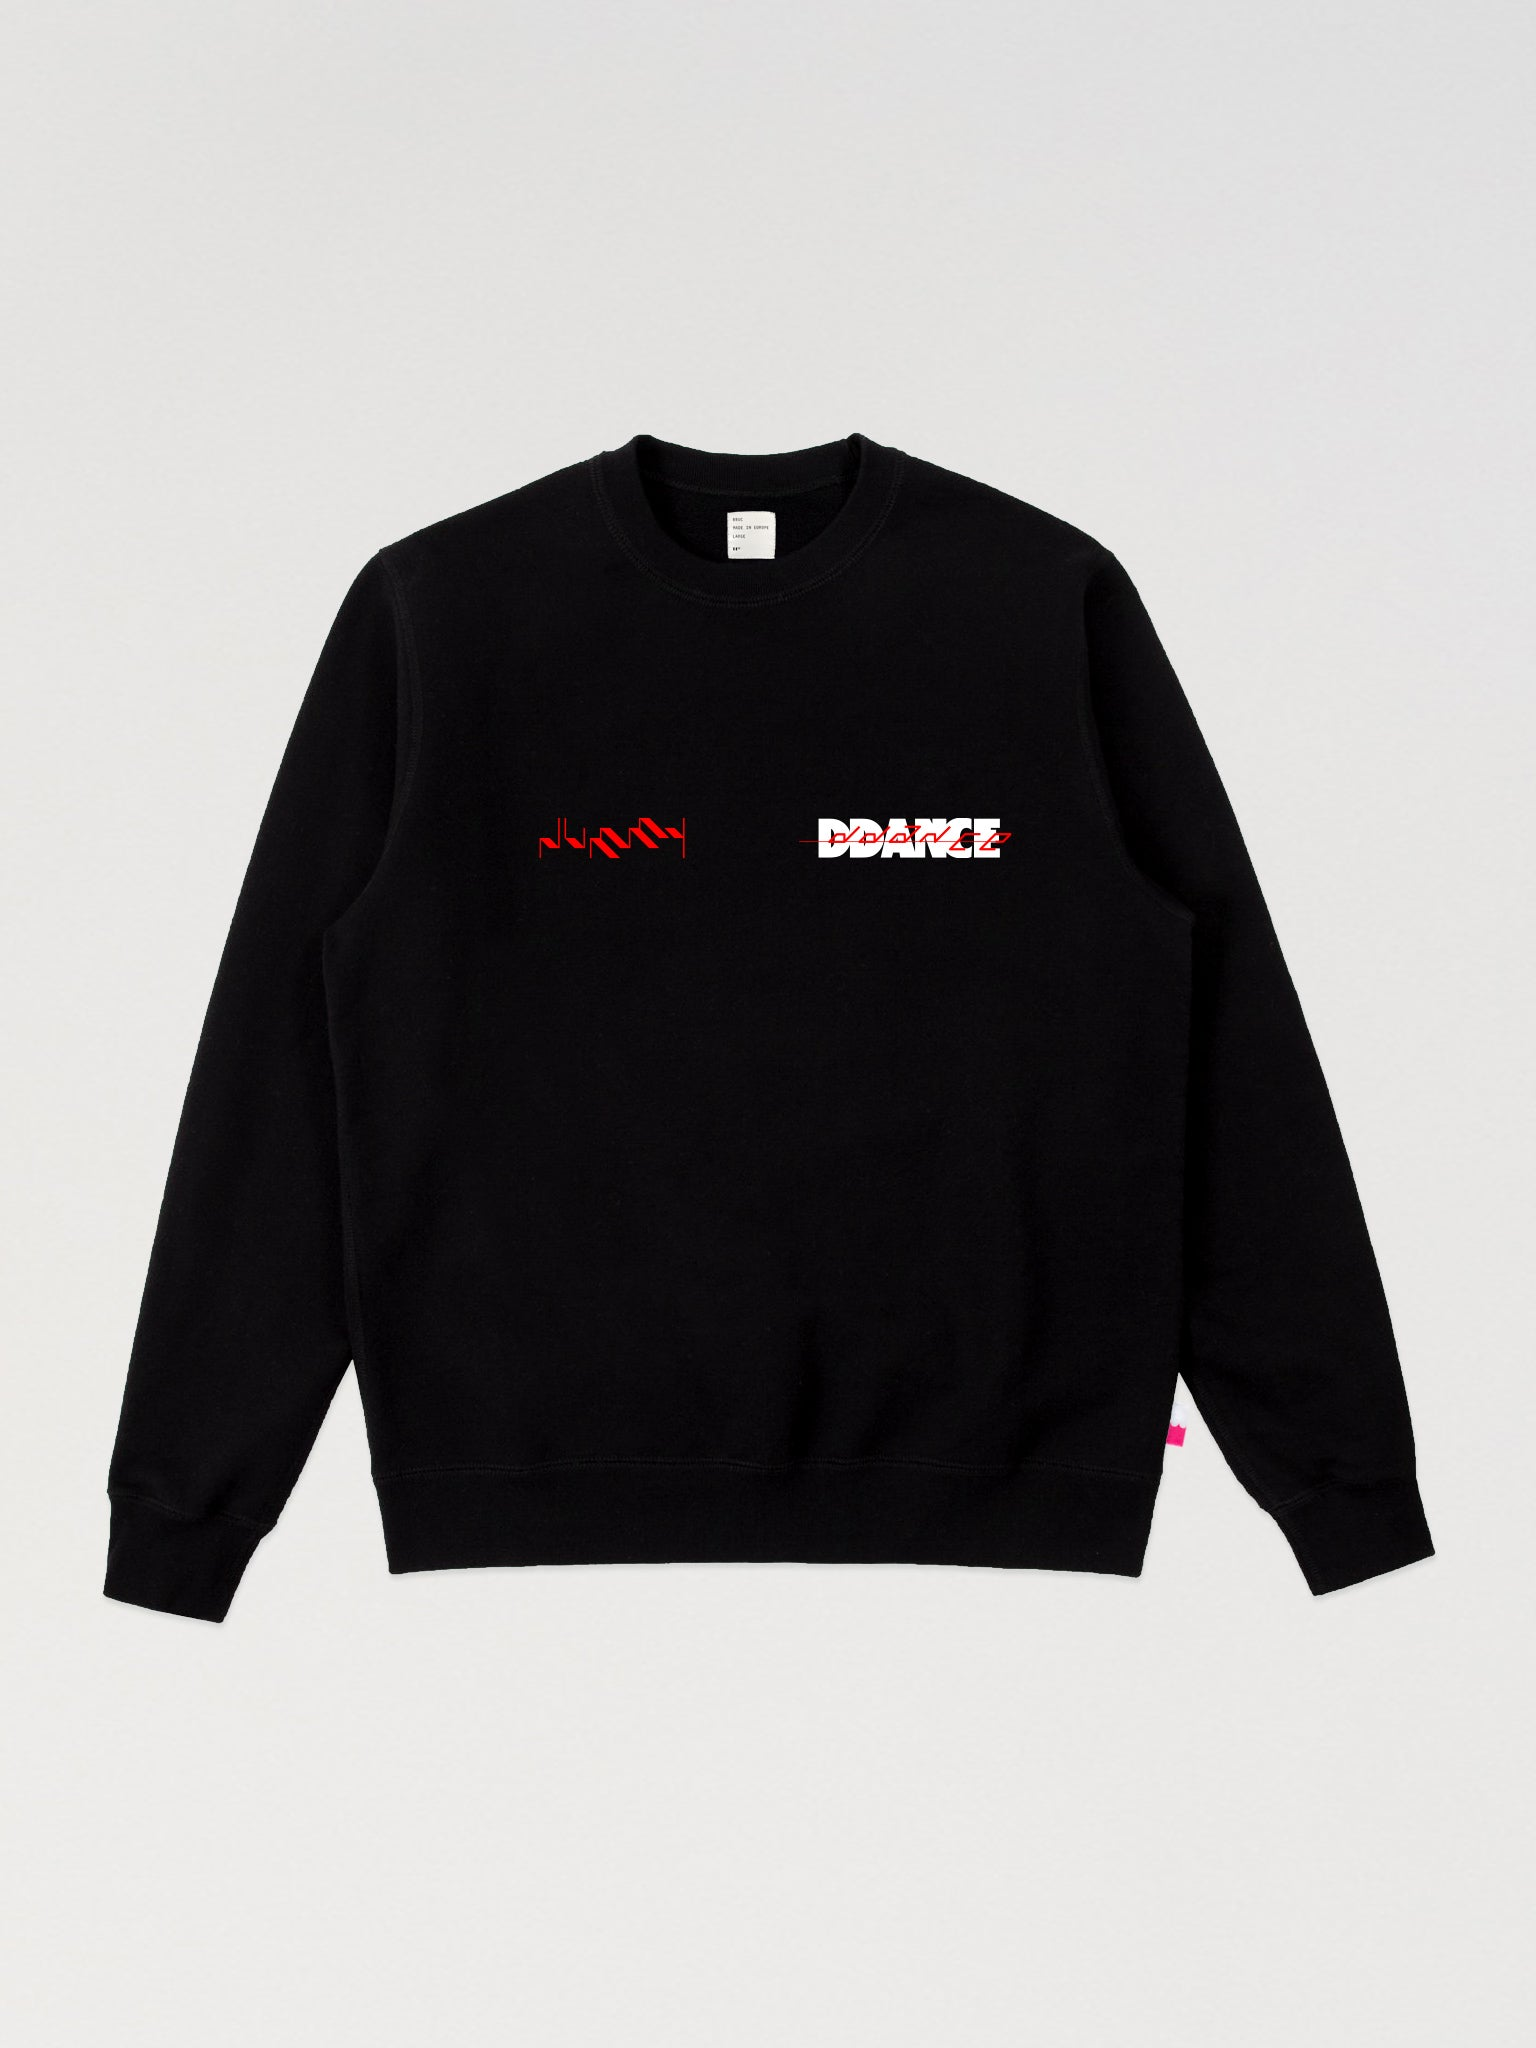 DDANCE Sweater Black